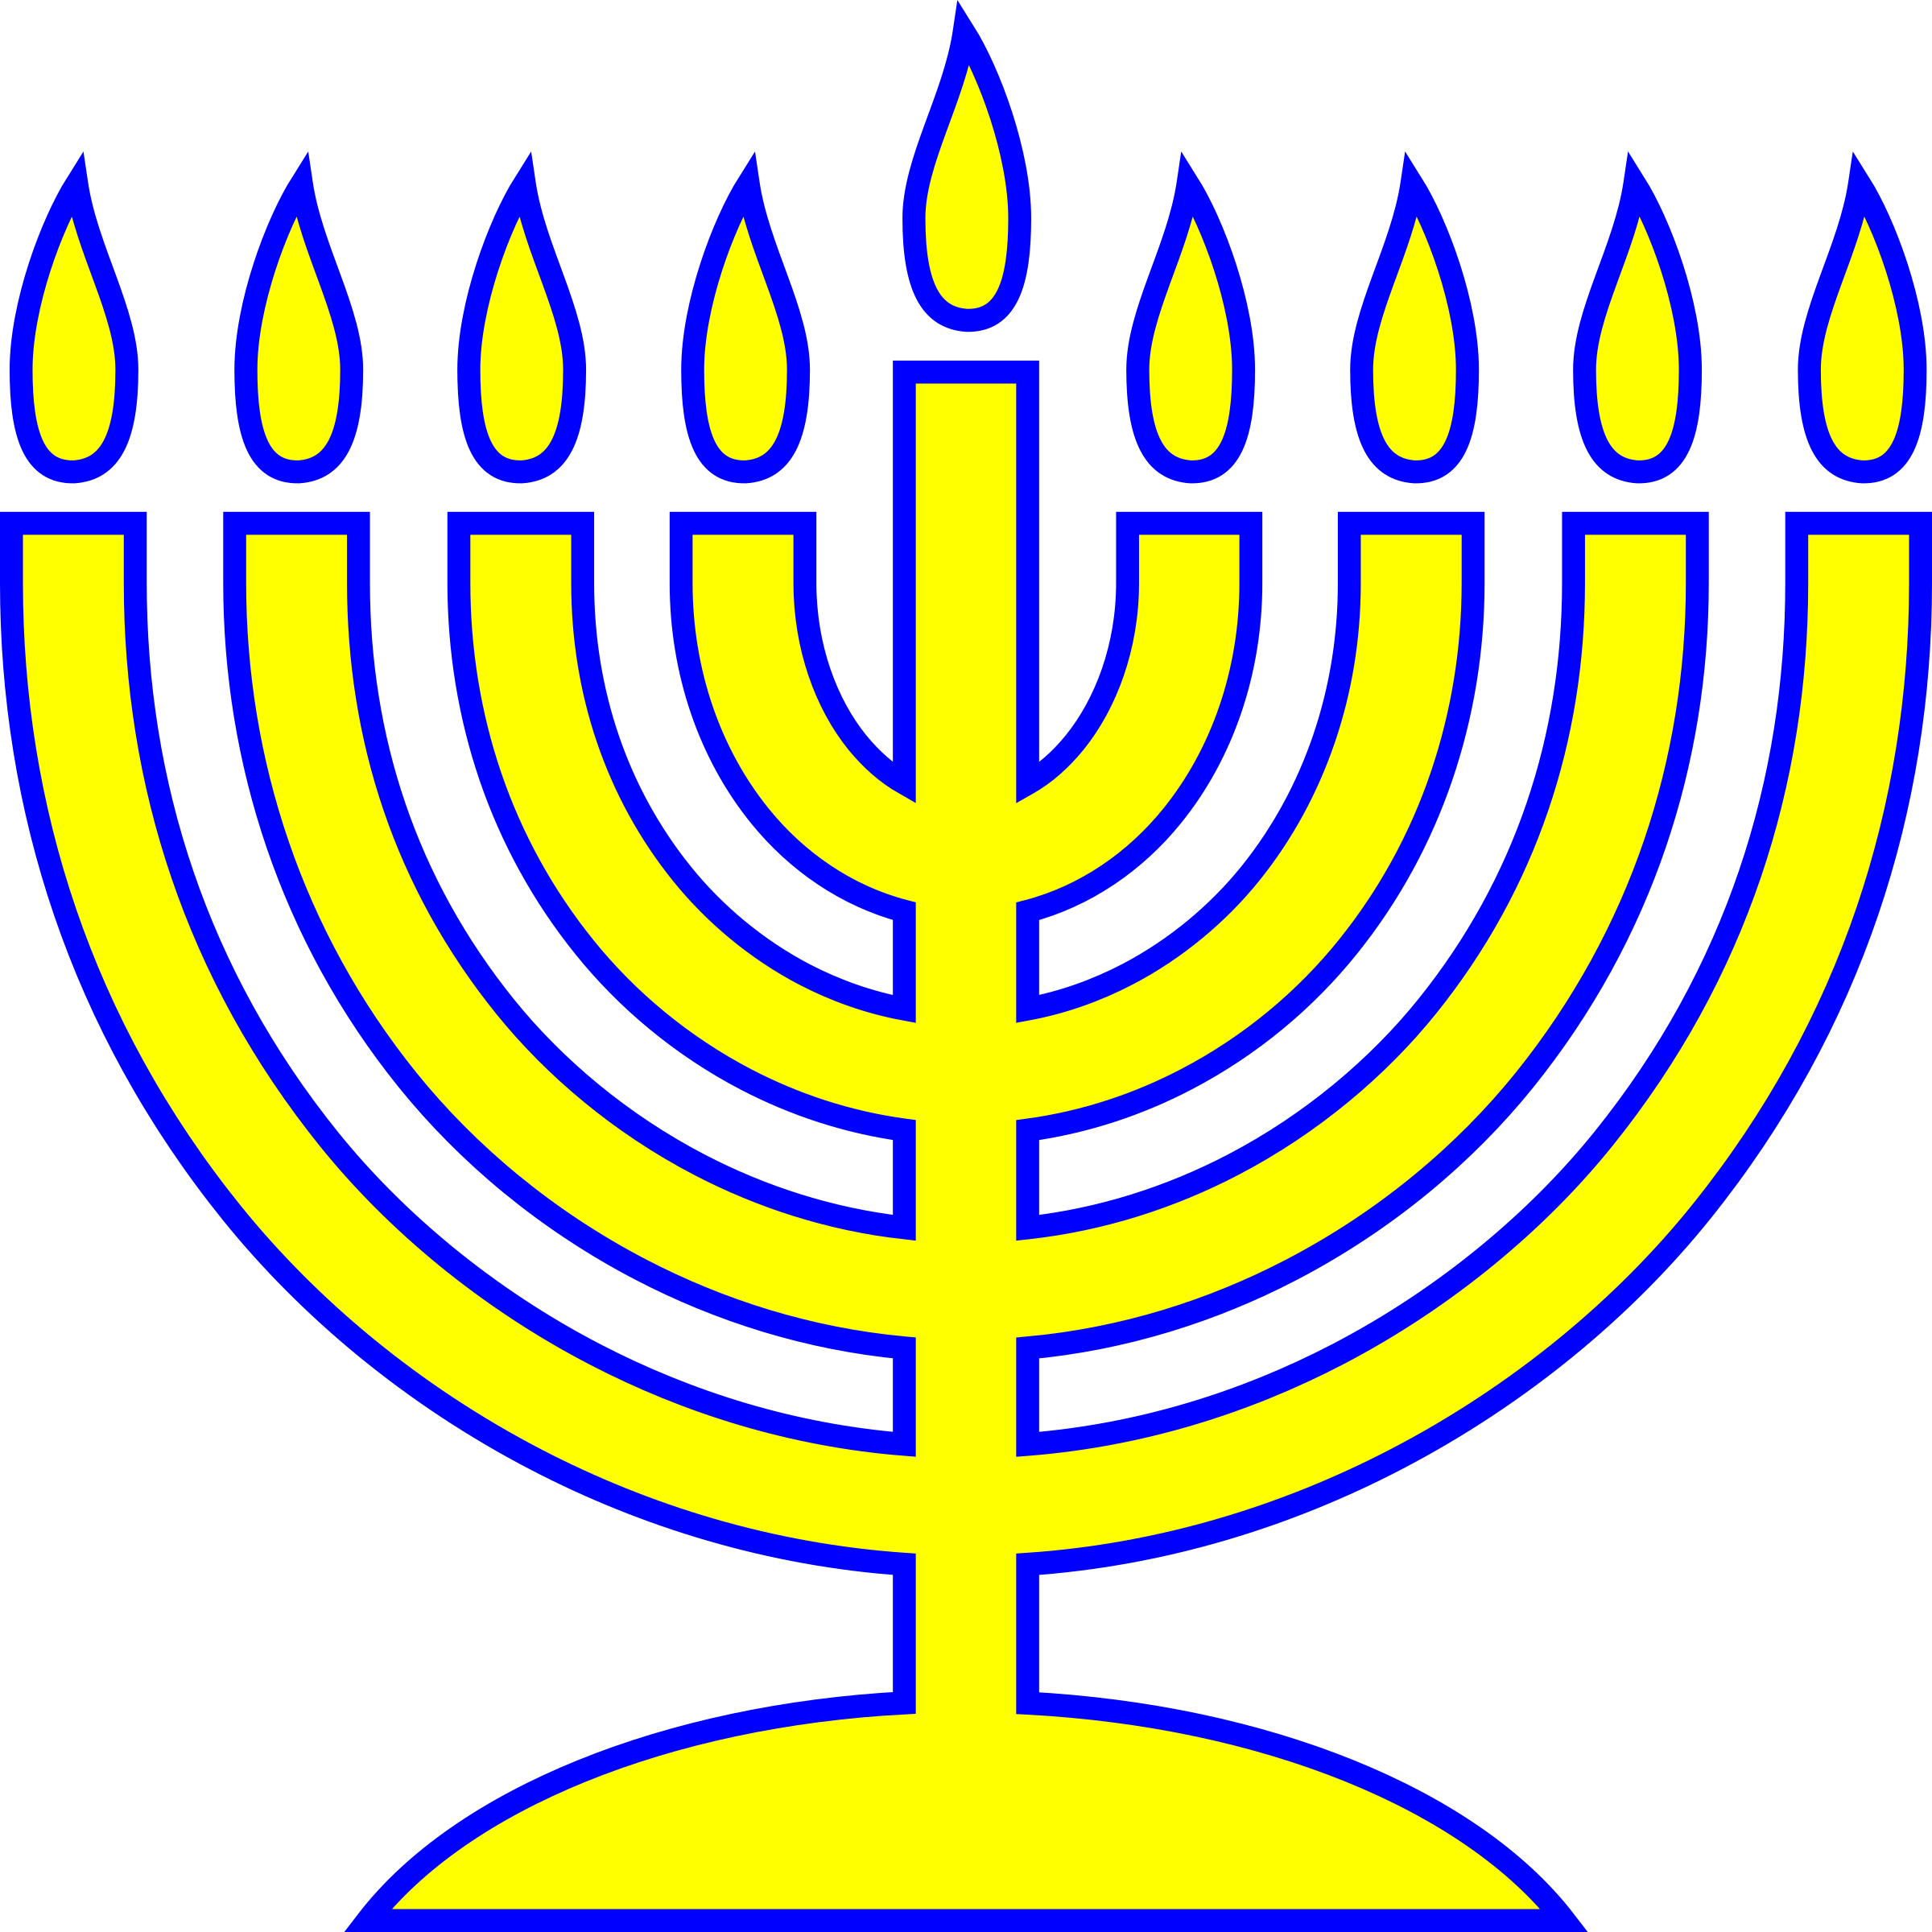 Menorah clipart 20 free Cliparts   Download images on ...